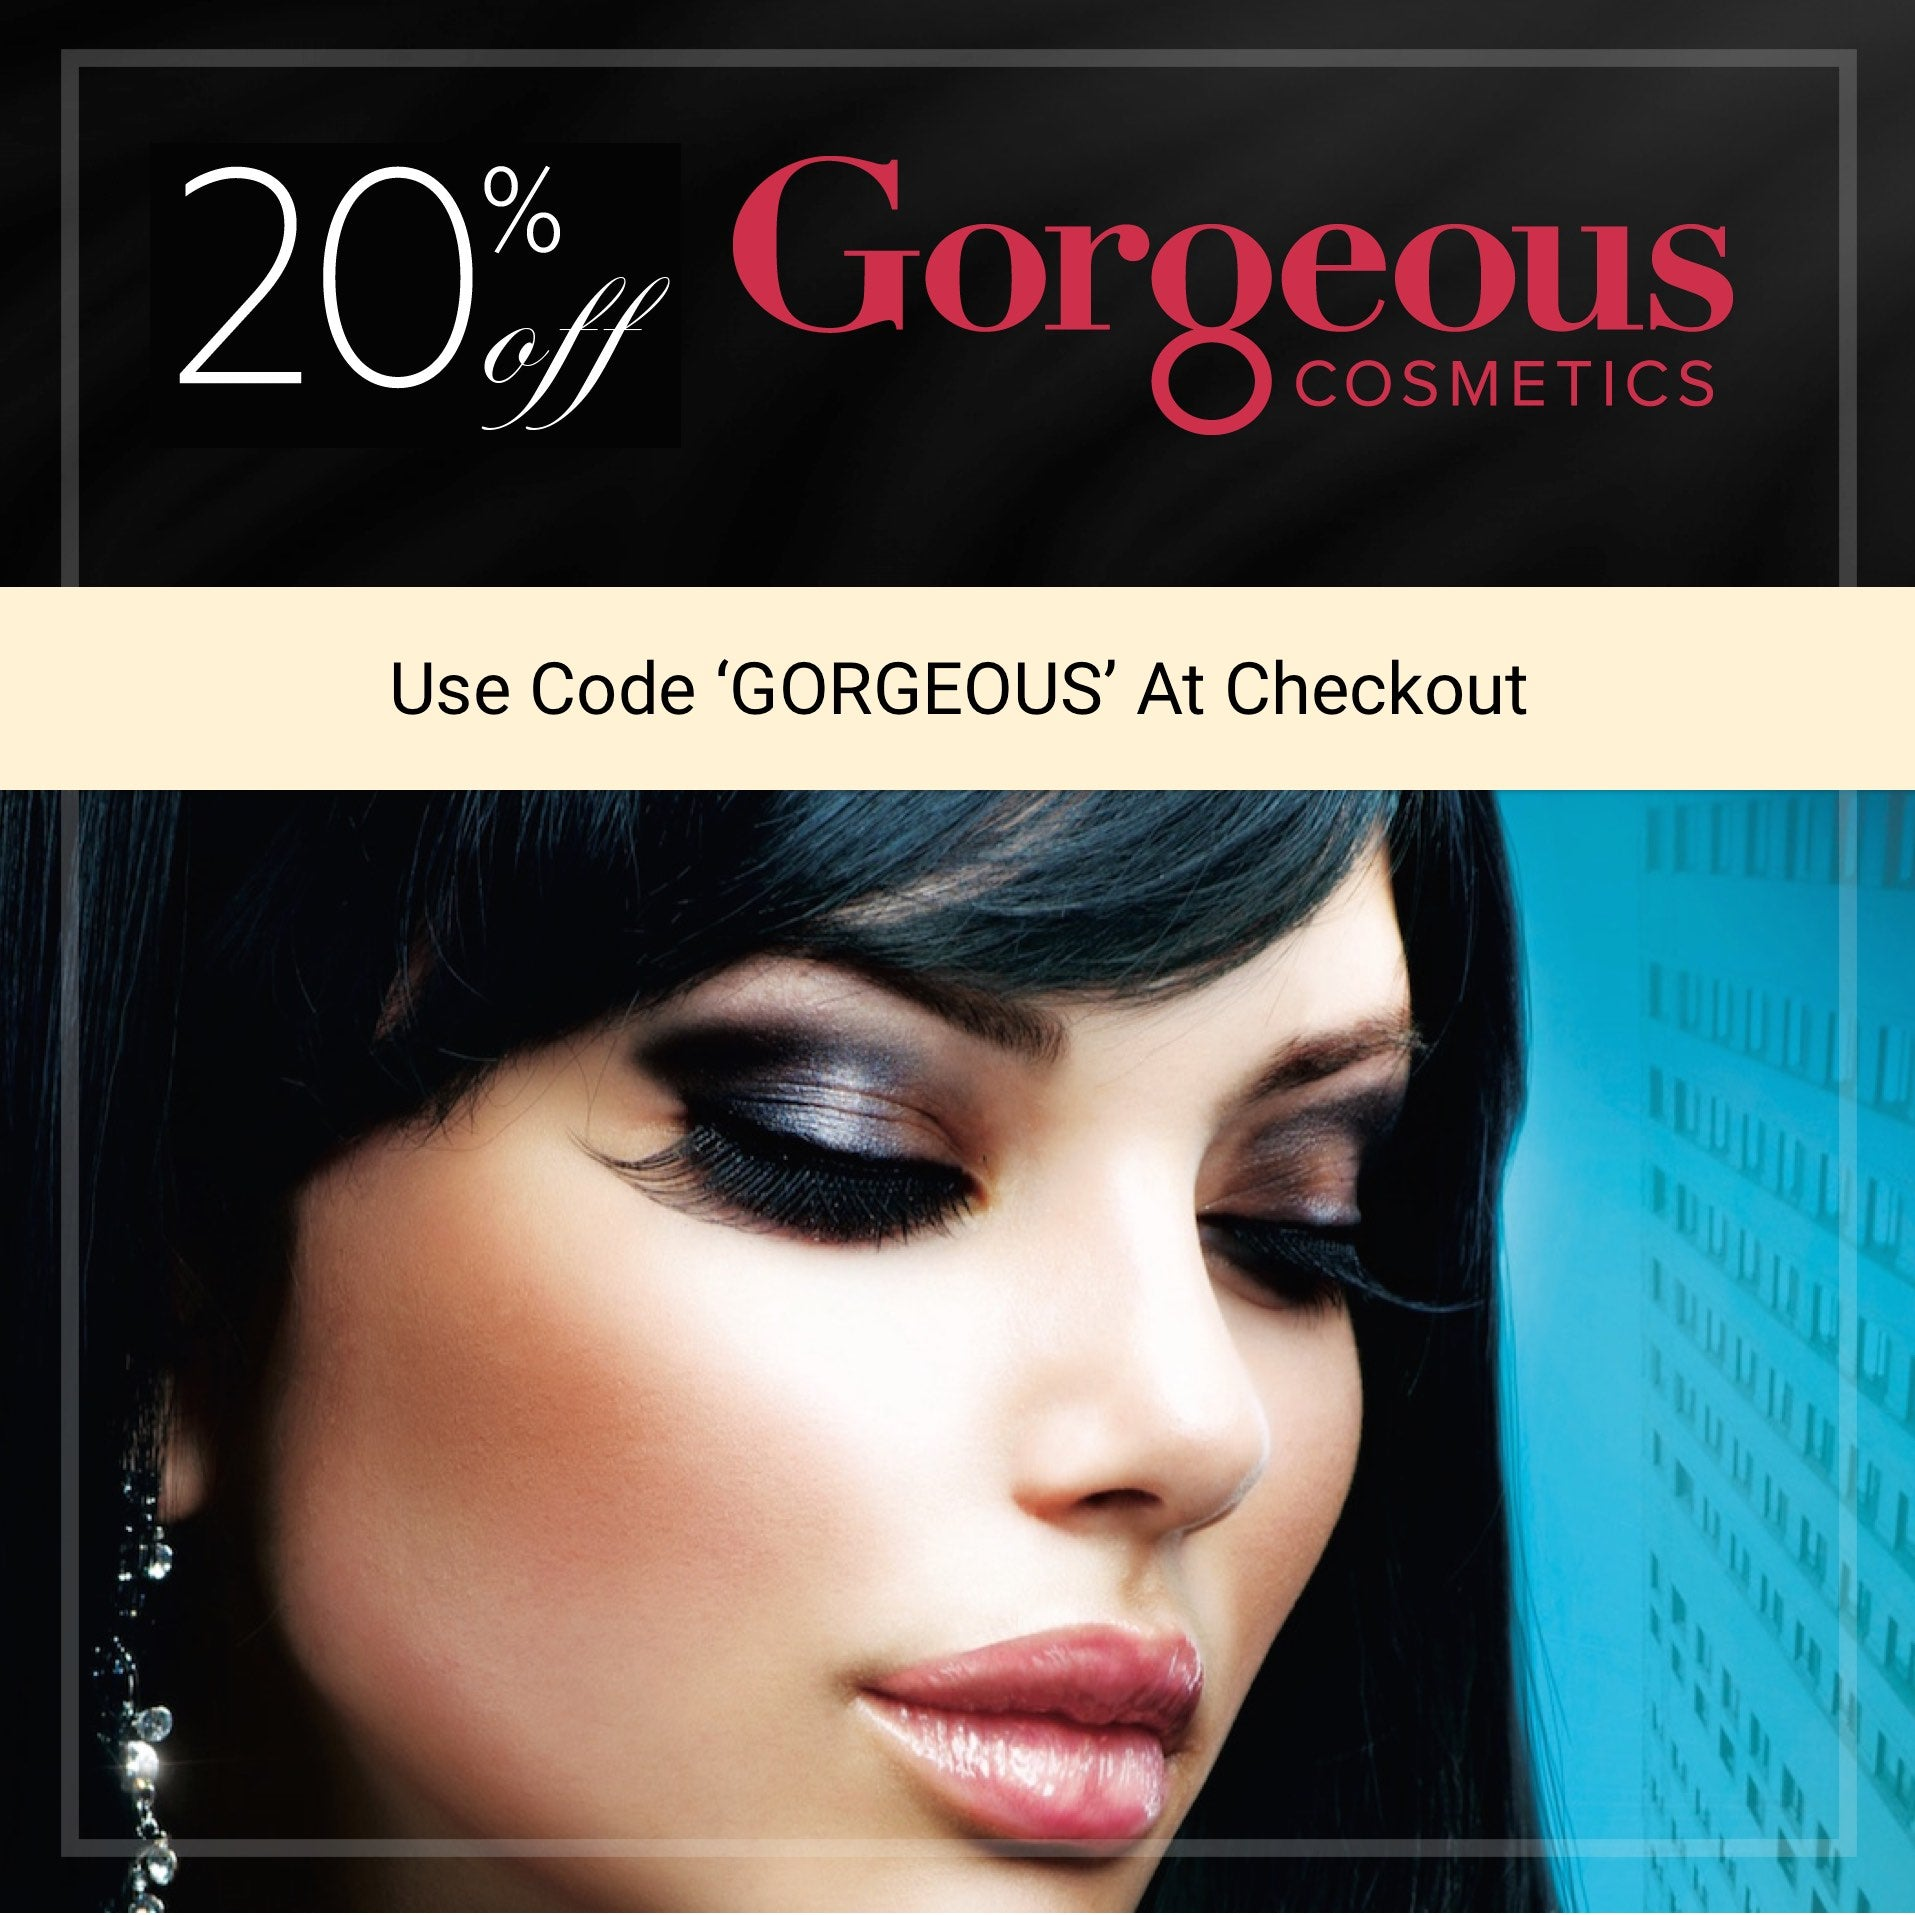 grgeous cosmetics 20% off sale